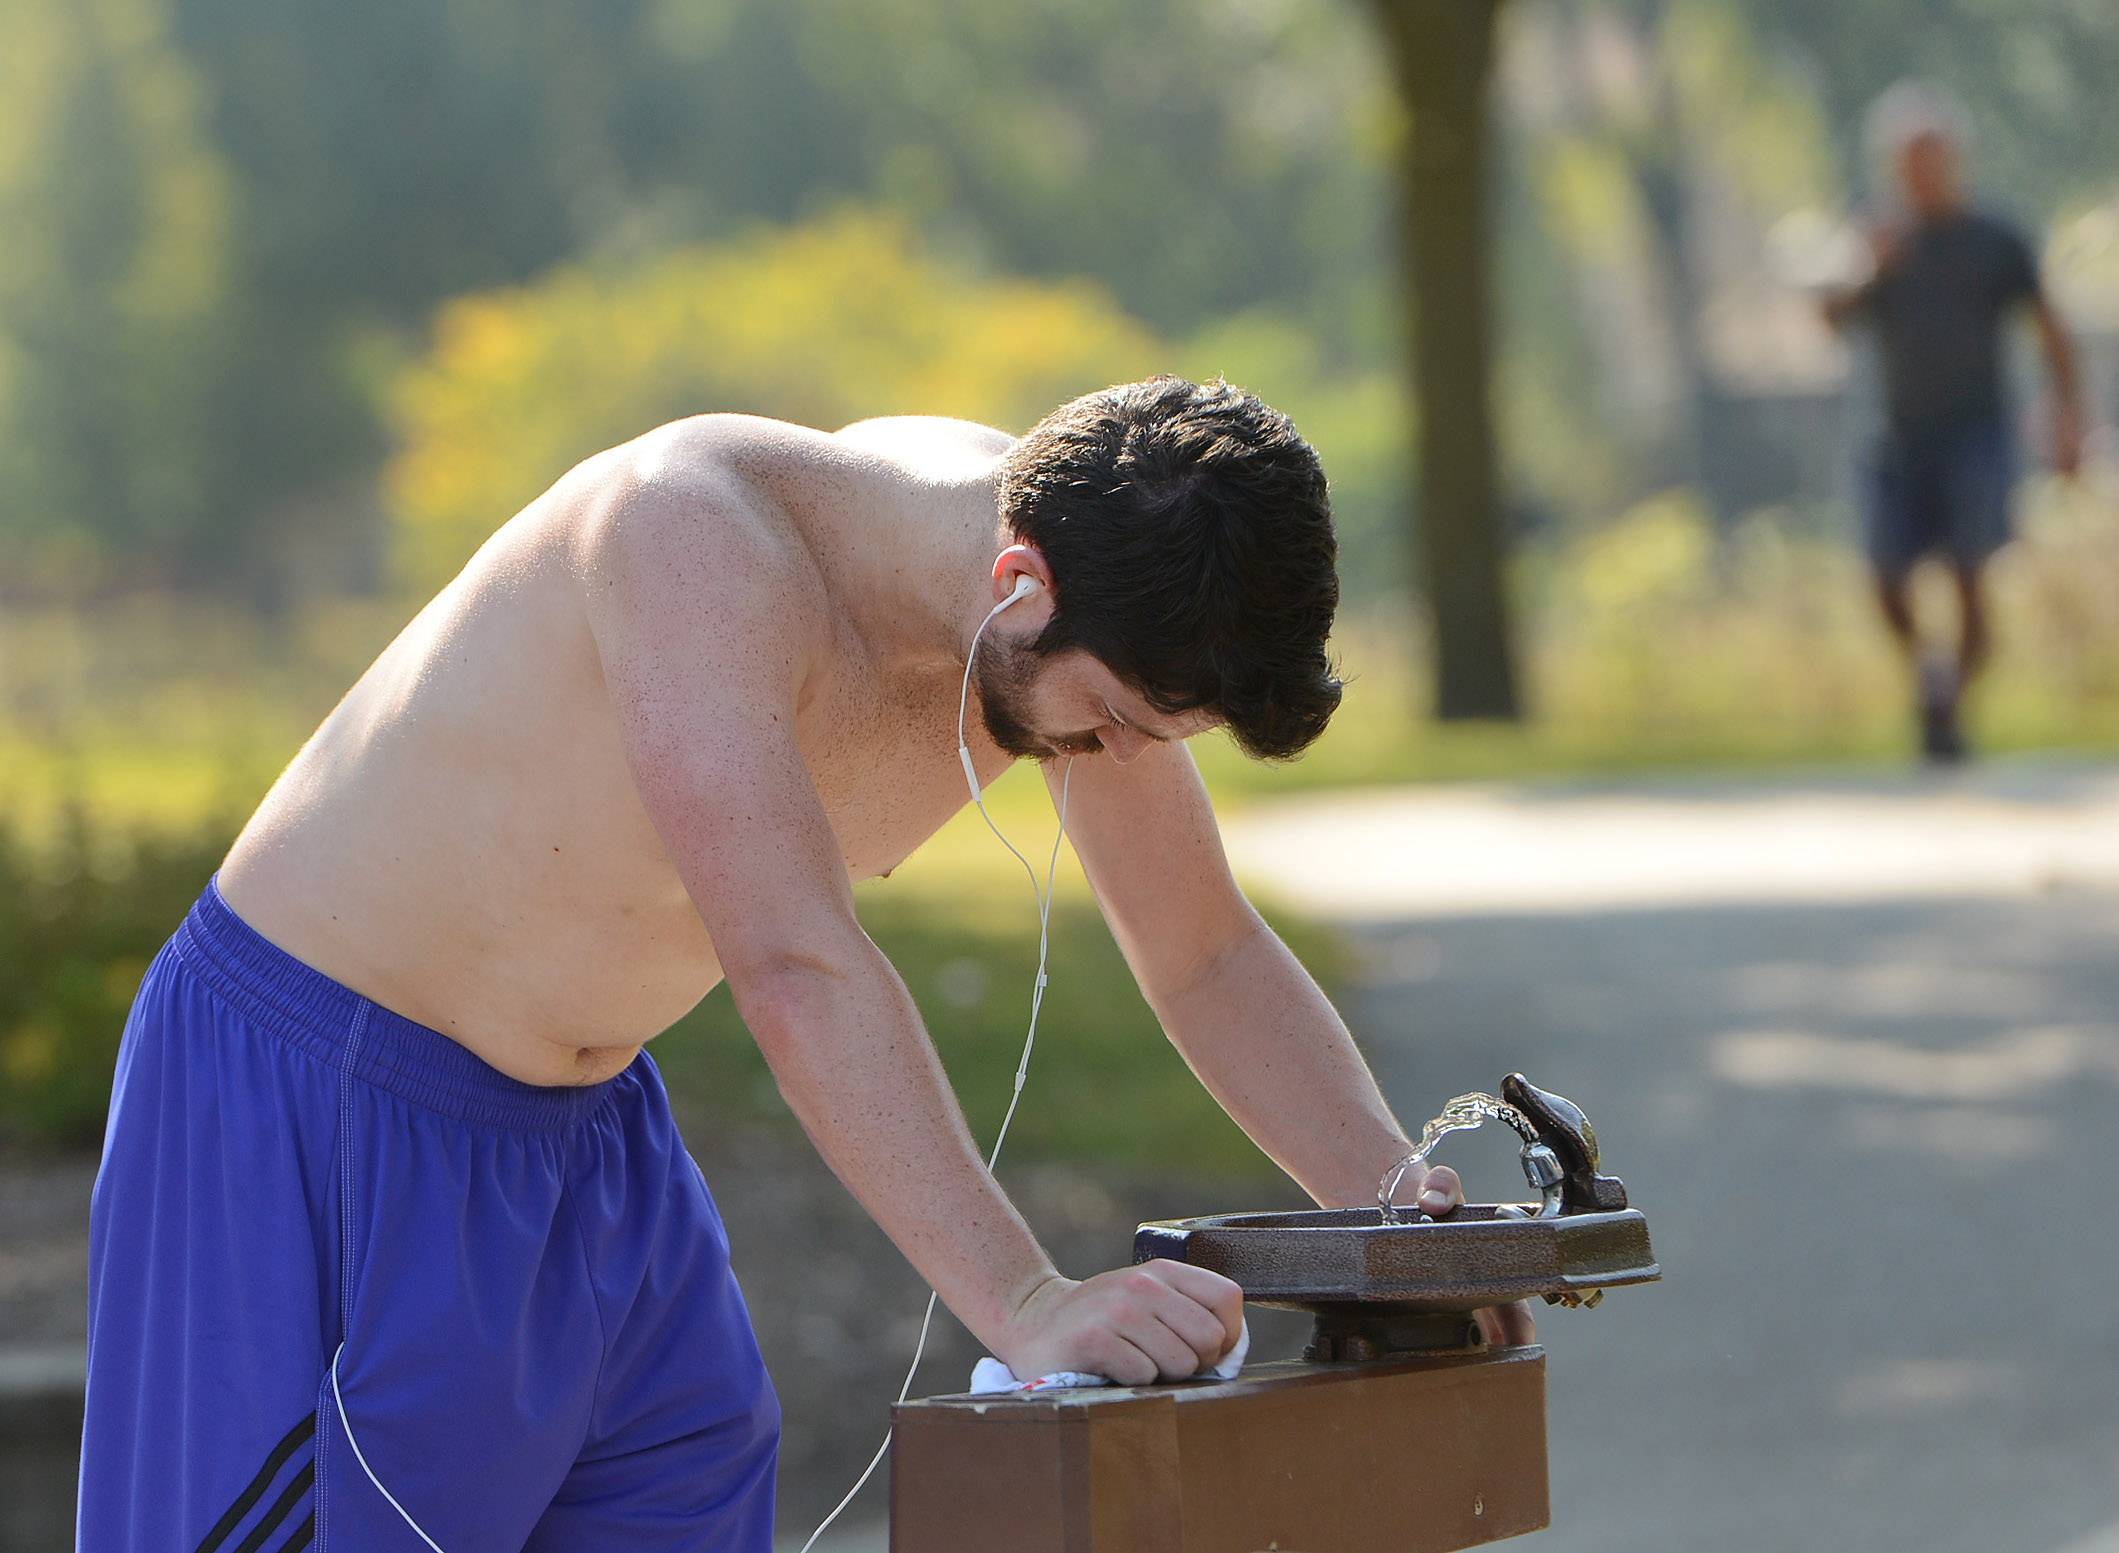 Chris McClellan of Buffalo Grove grabs some water from a fountain at Lake Arlington in Arlington Heights. McClellan says he likes to run on hot days to get a good sweat going. He runs three or four times a week.